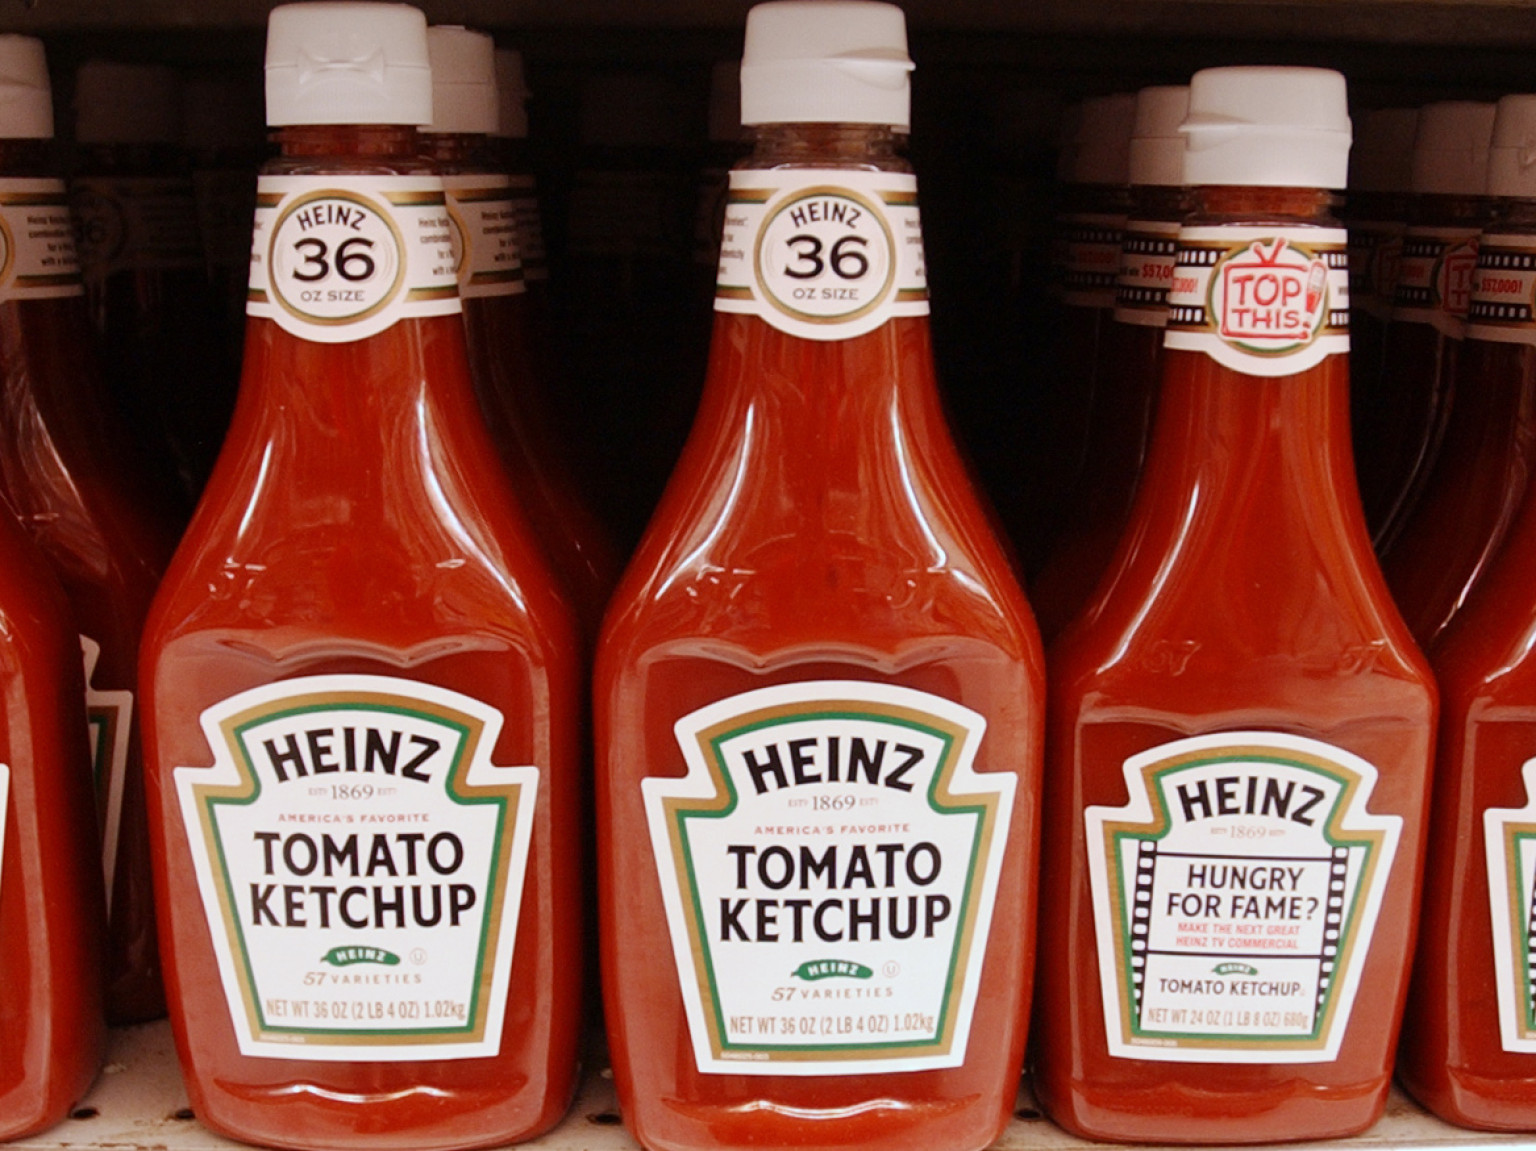 Rodent Fur Found In Batch Of Heinz Ketchup In Brazil ...